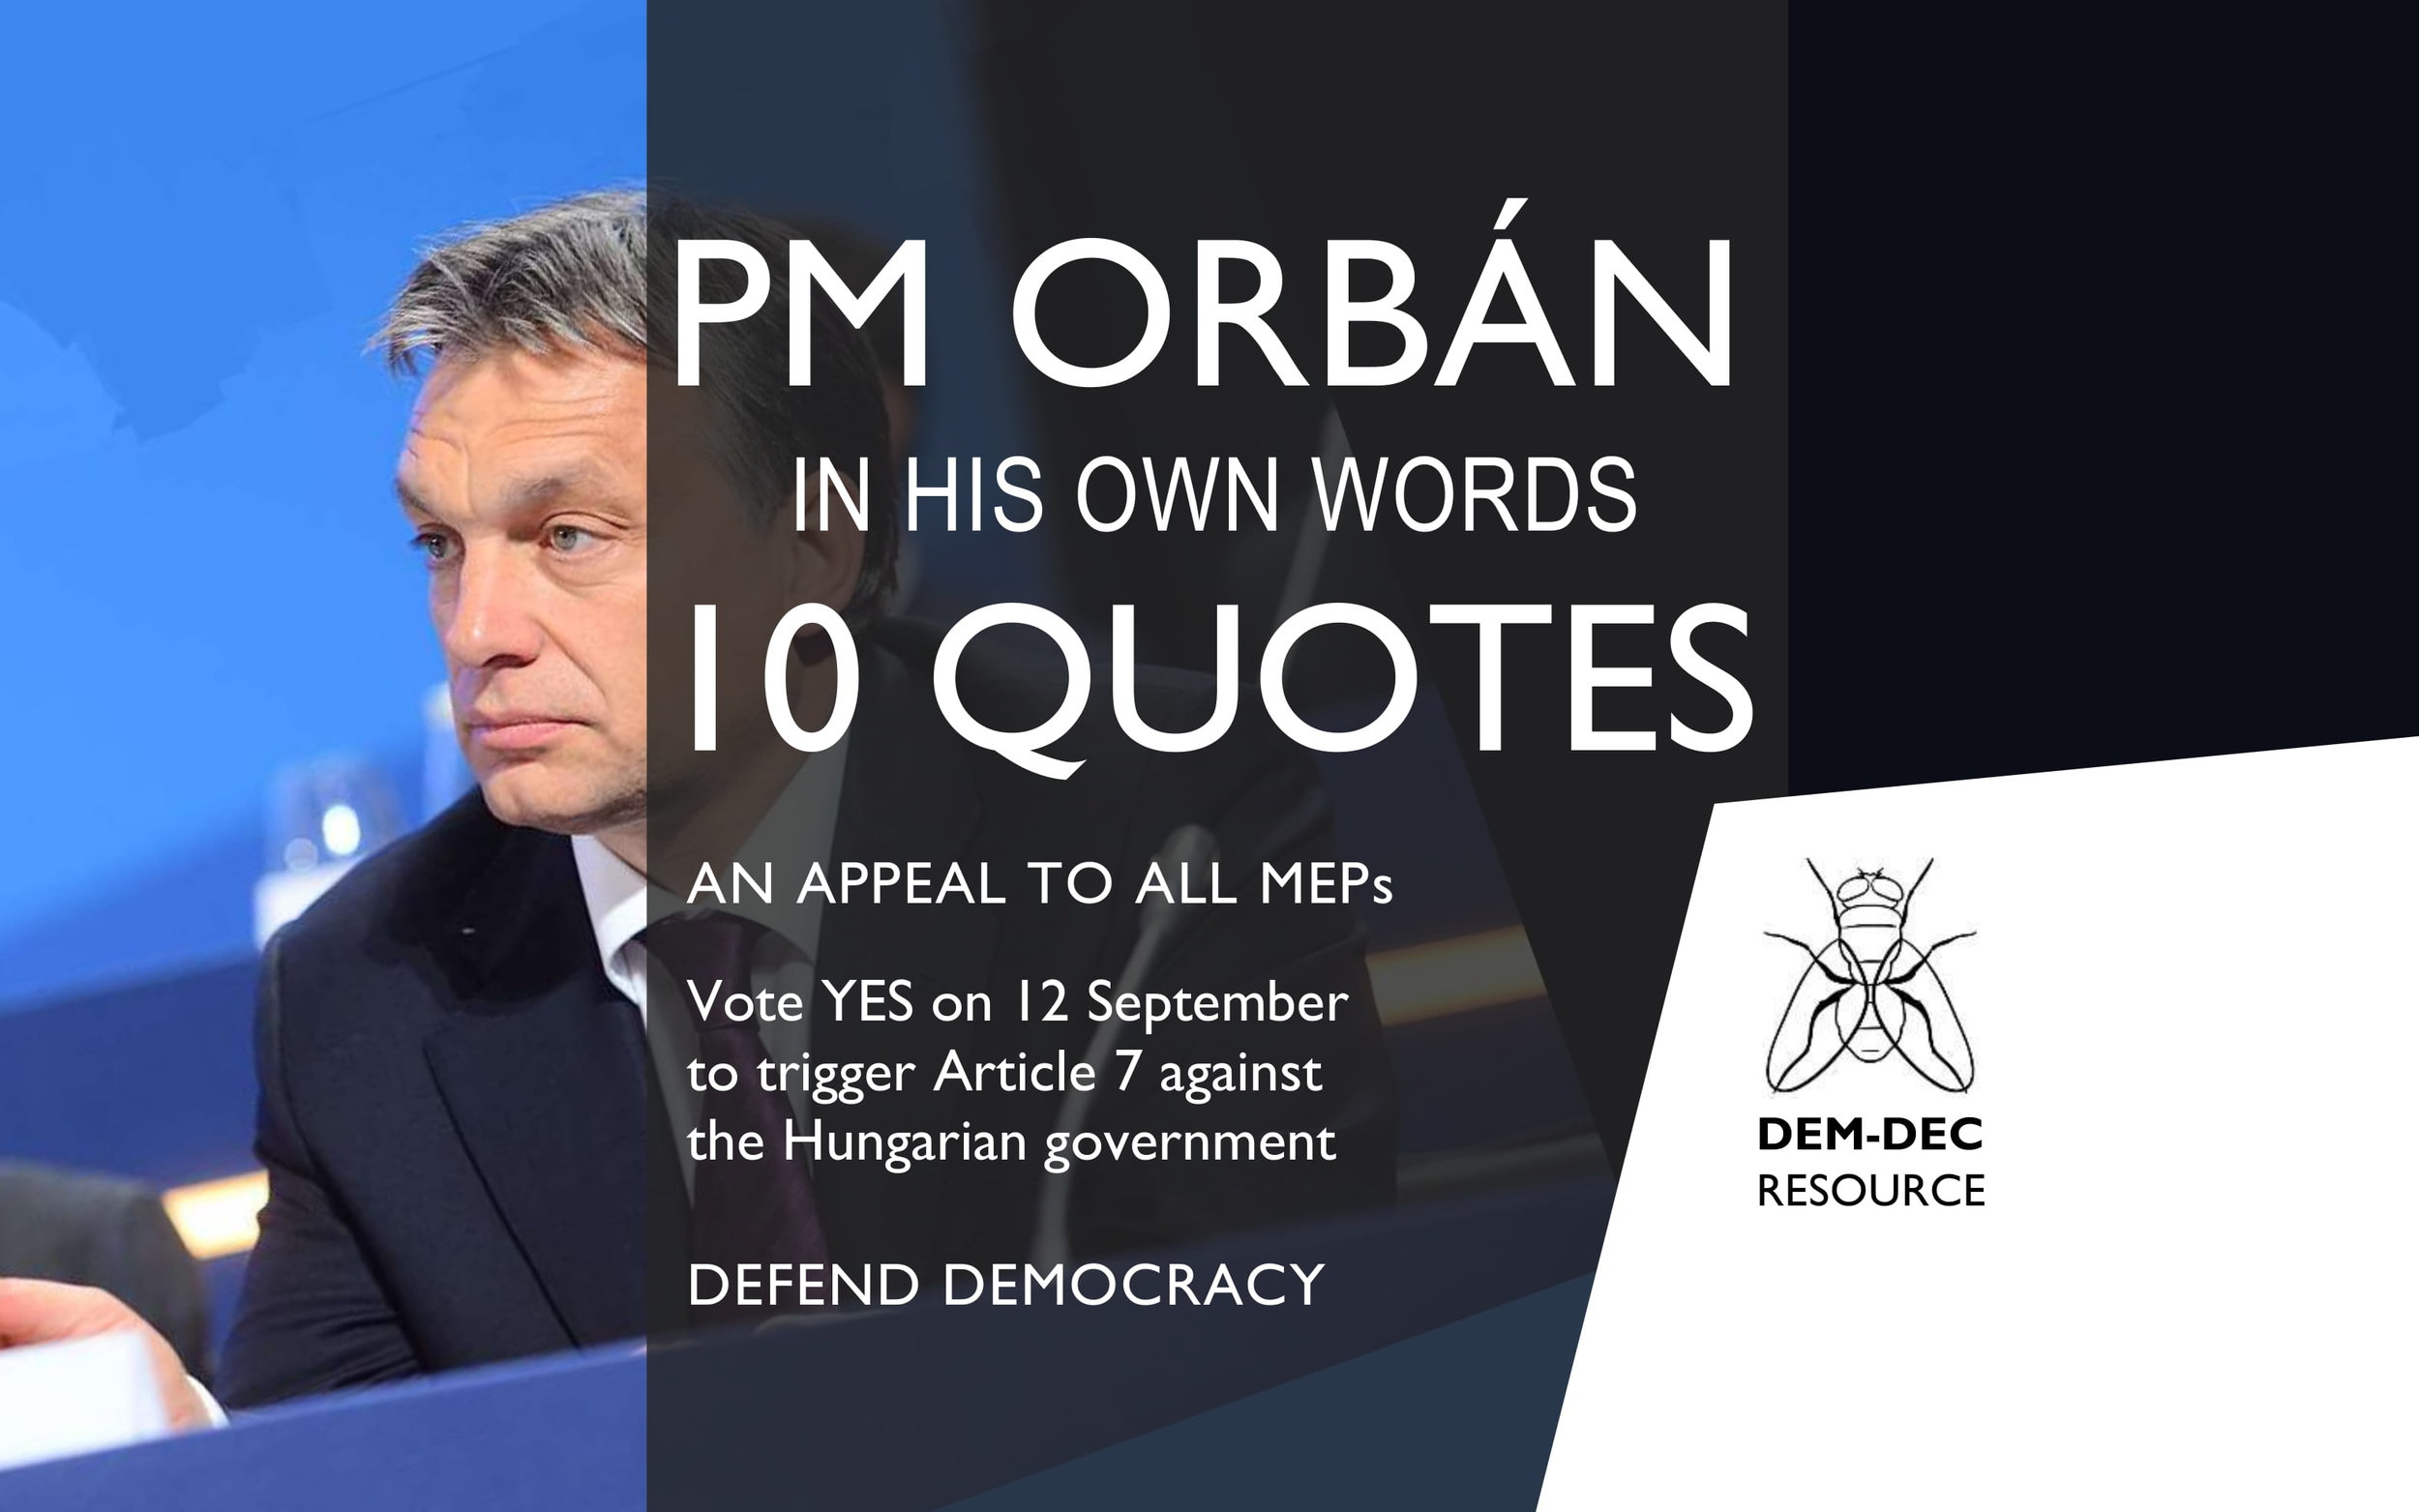 Appeal to MEPs_10 PM Orban Quotes_Article7Vote-01.jpg